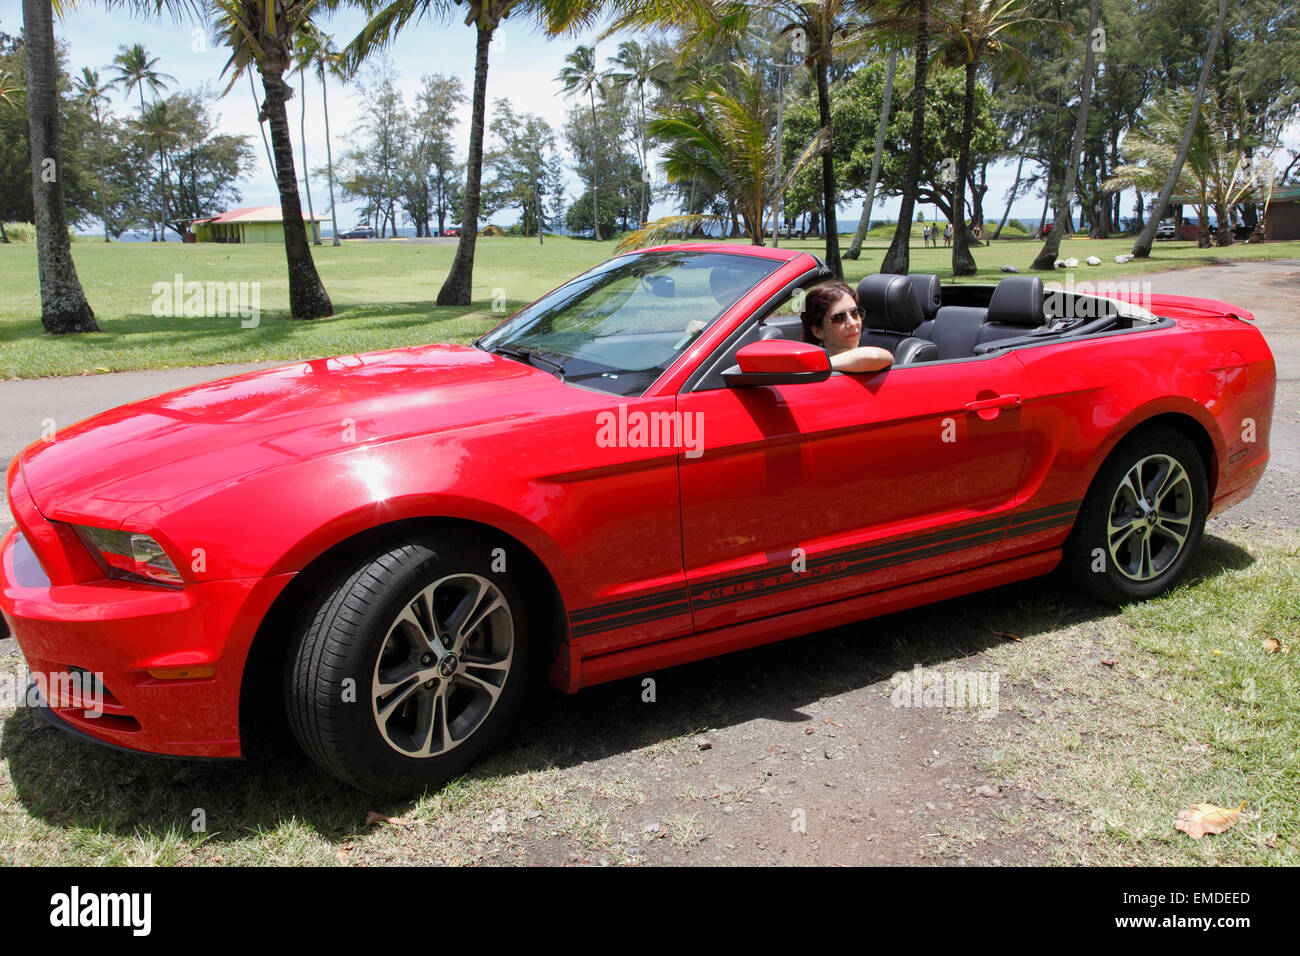 red ford mustang convertible photos red ford mustang convertible images alamy. Black Bedroom Furniture Sets. Home Design Ideas